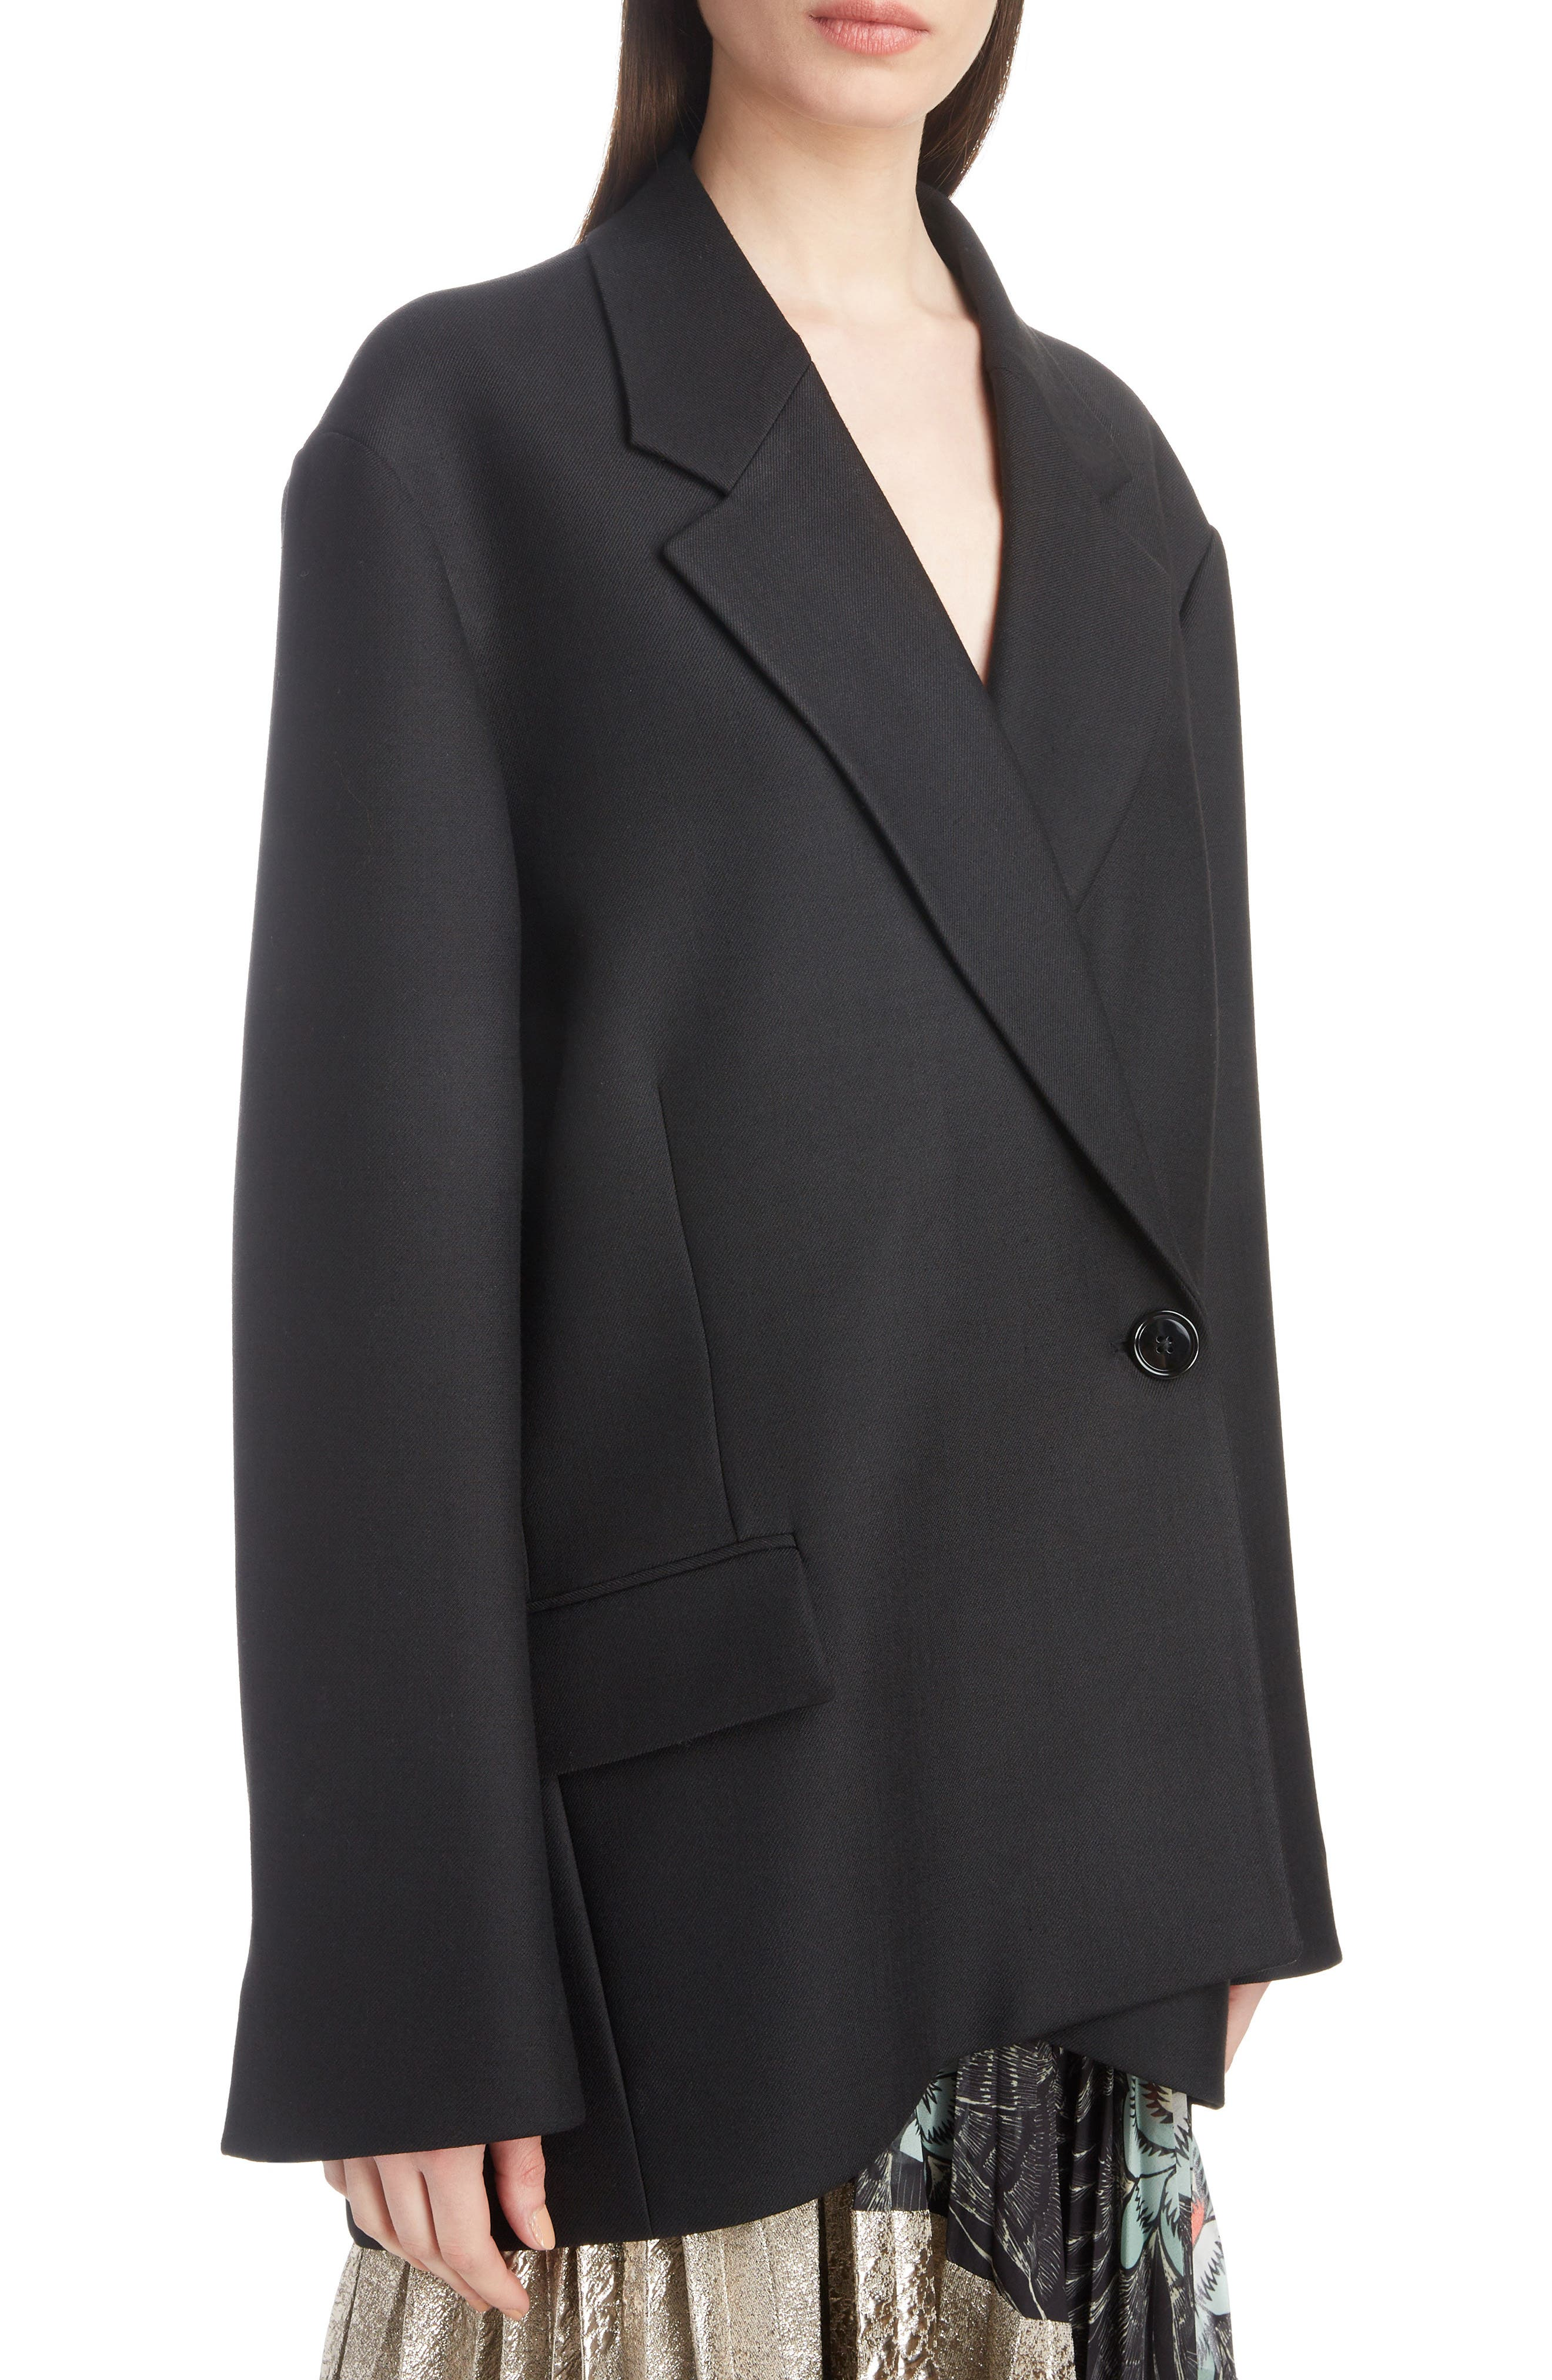 DRIES VAN NOTEN,                             Double Breasted One-Button Blazer,                             Alternate thumbnail 4, color,                             001